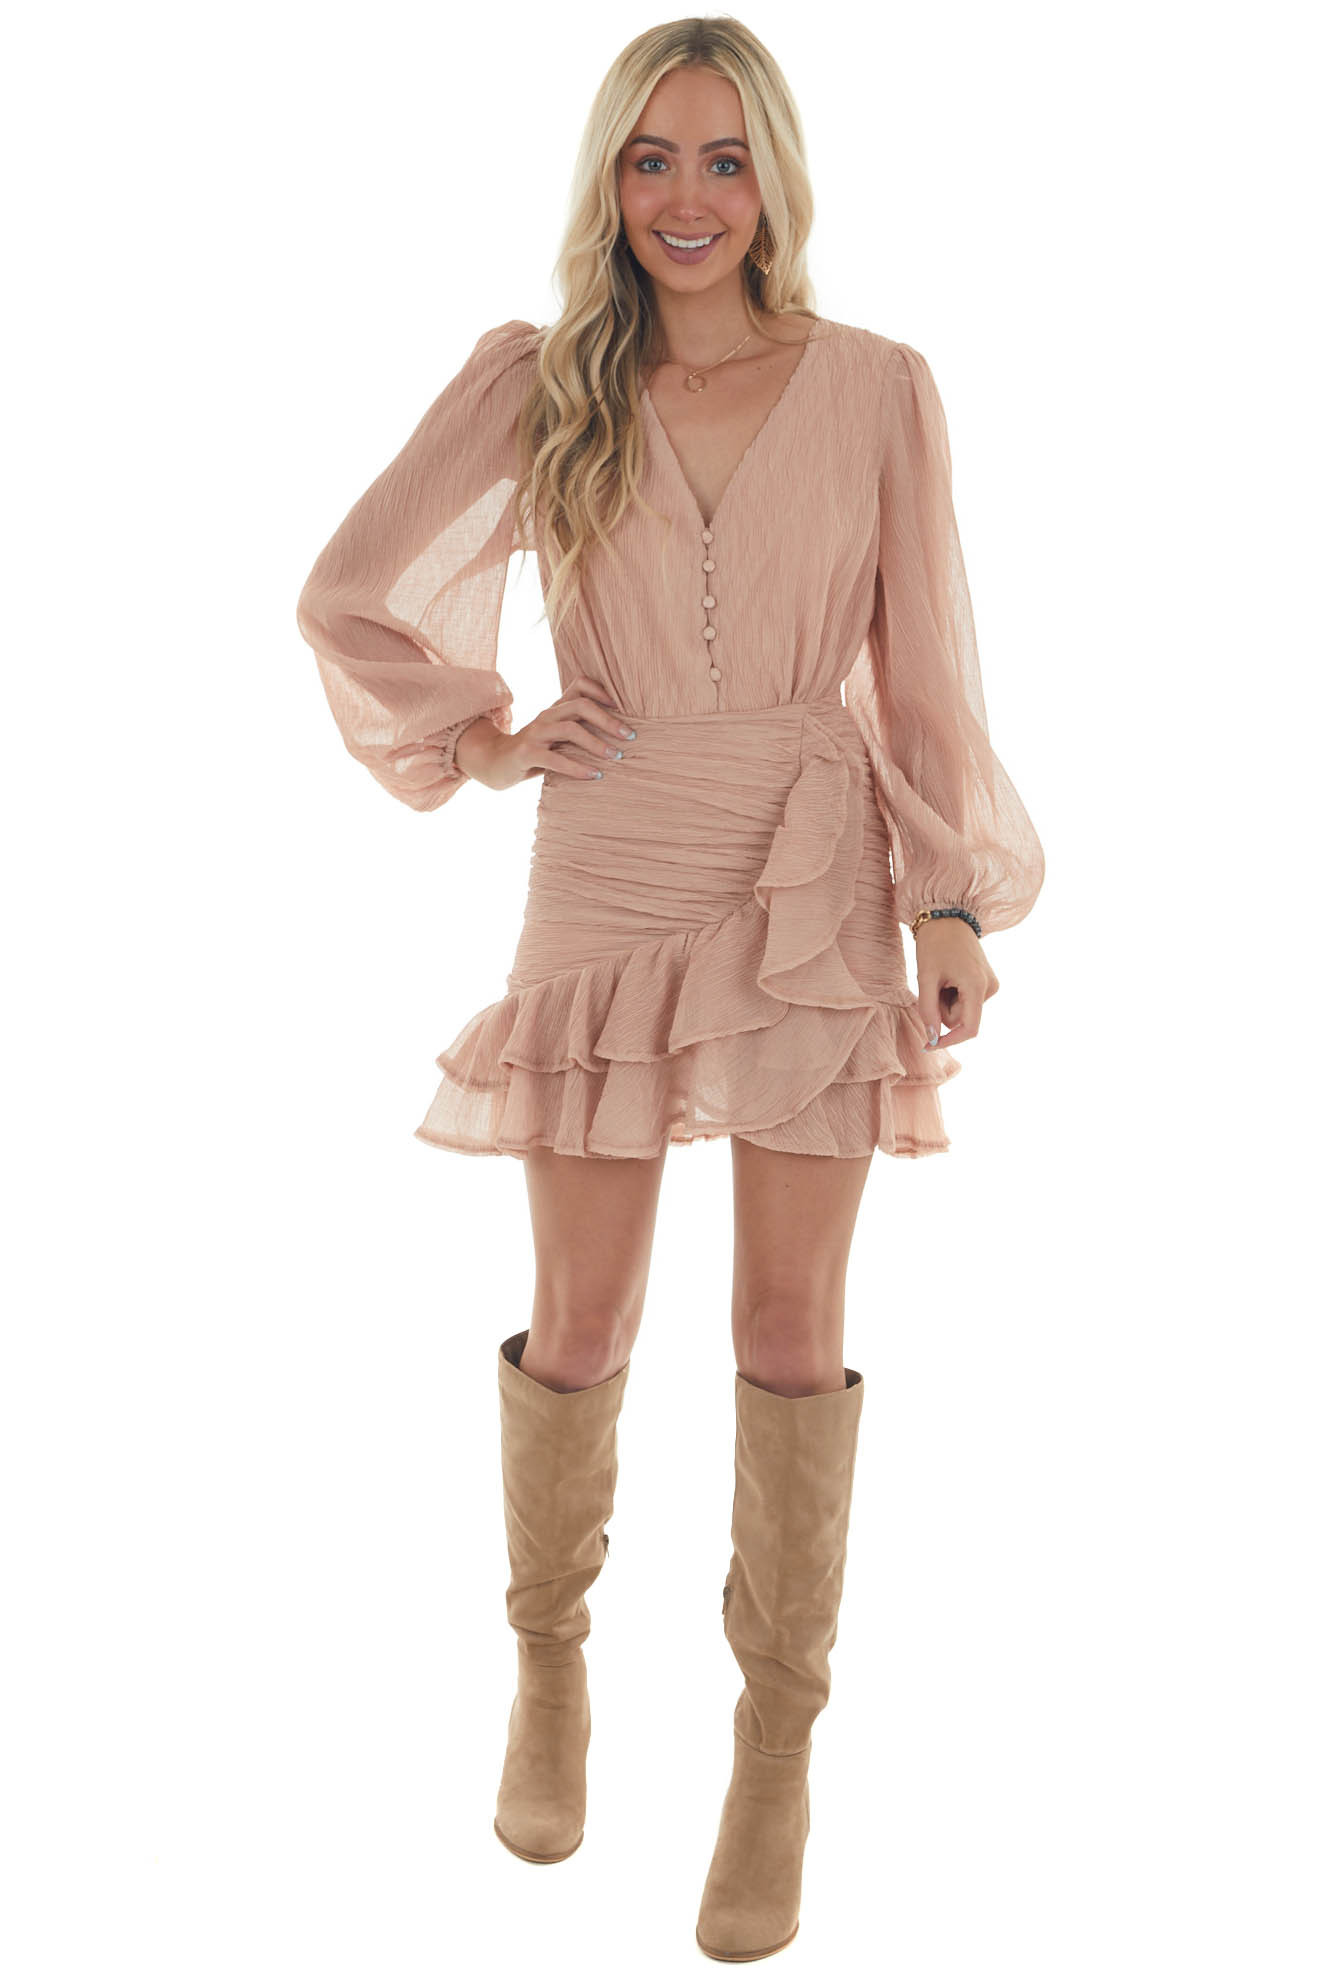 Dusty Apricot Textured Button Up Ruffle Dress